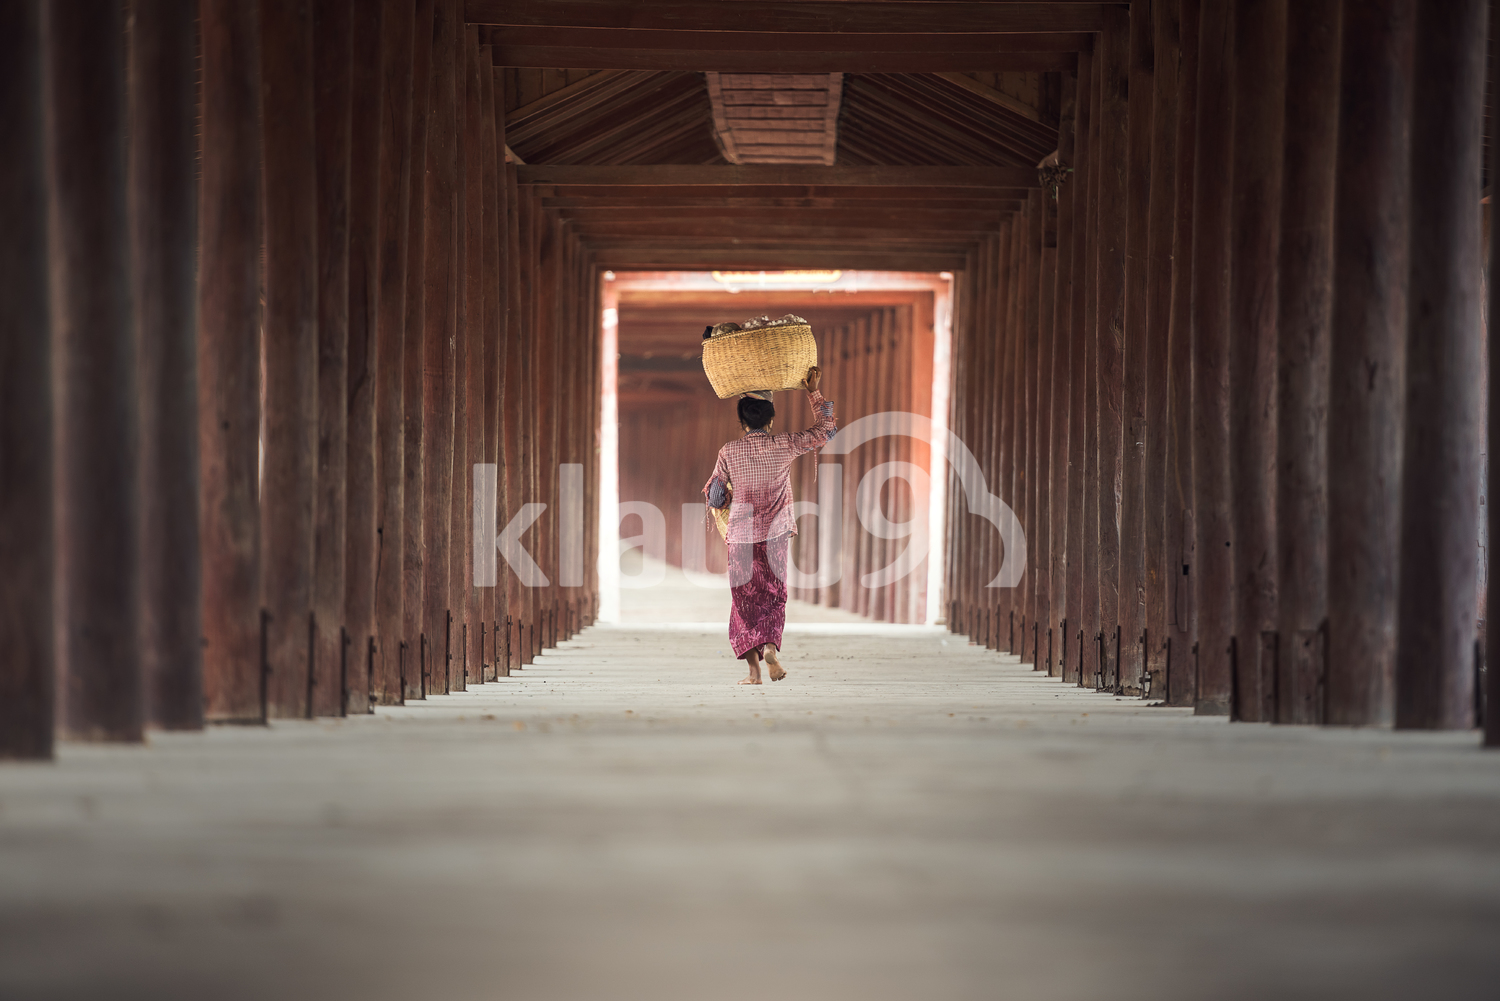 Burmese woman putting bamboo basket on head